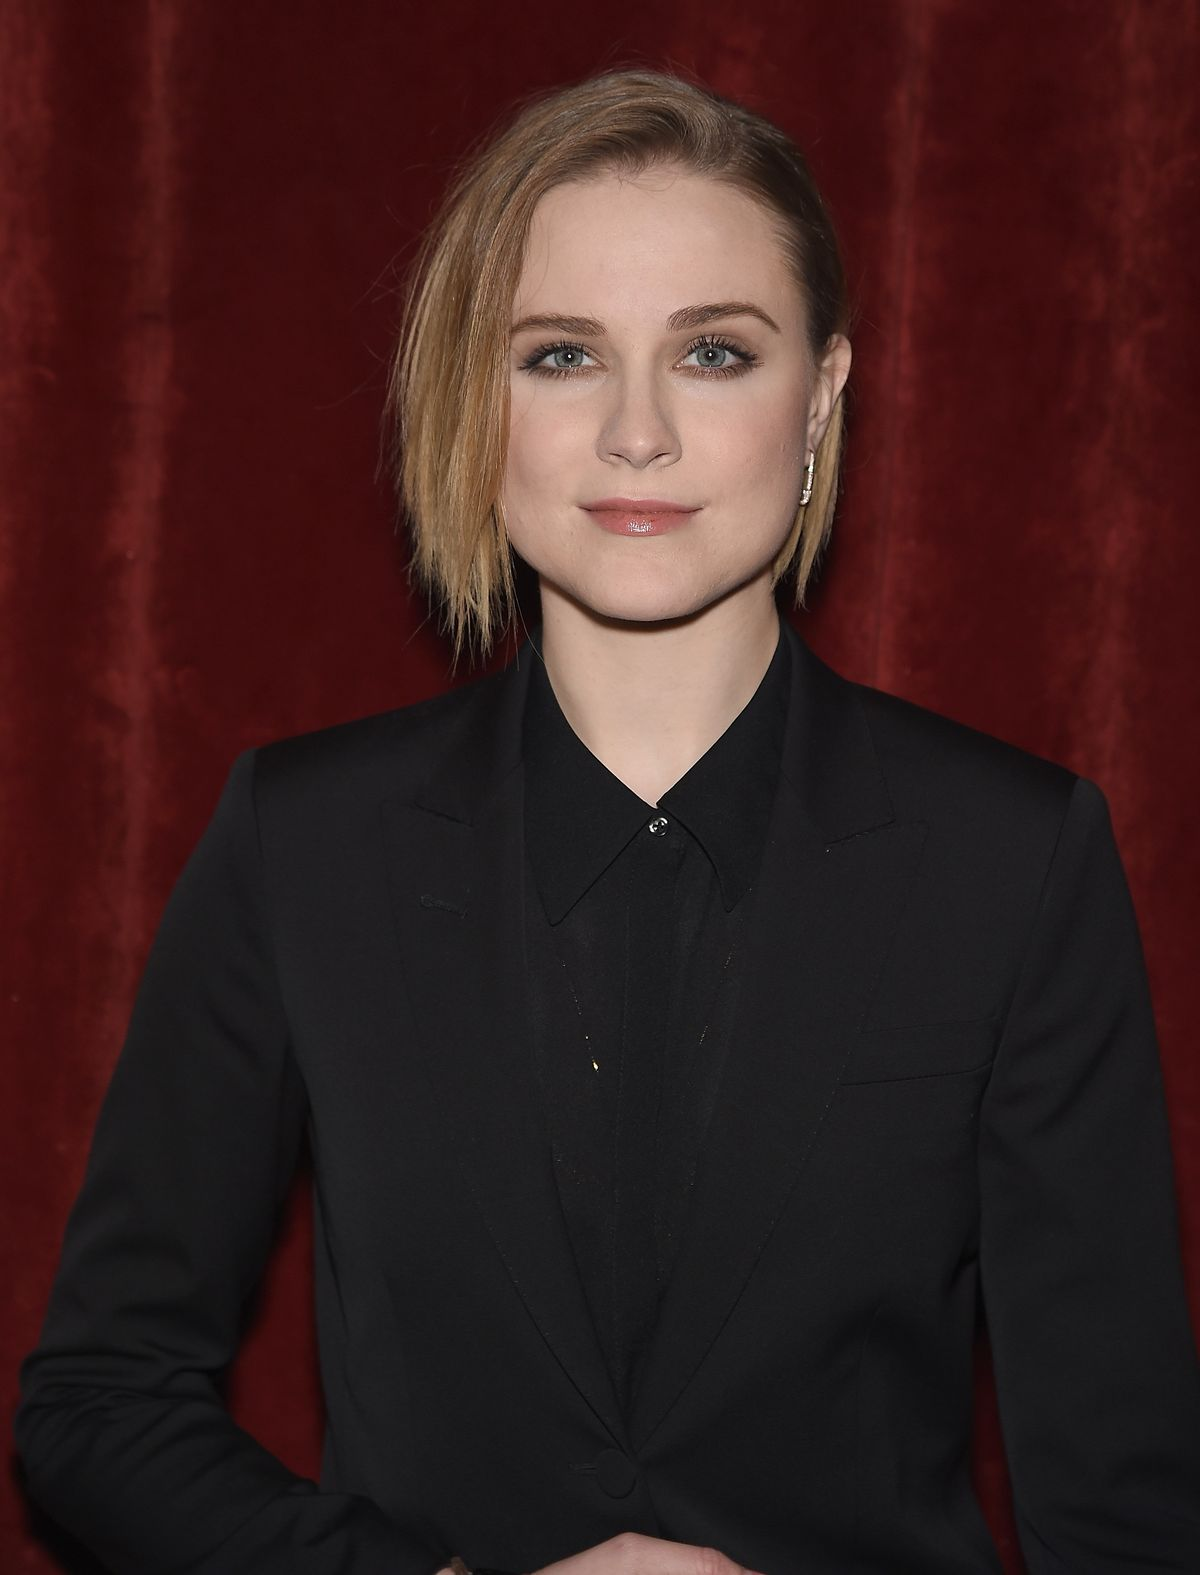 NEW YORK, NY - JANUARY 17: Evan Rachel Wood attends The New York Special Screening Of Lucasfilm's STRANGE MAGIC At The Tribeca Grand Hotel Hosted By The Cinema Society on January 17, 2015 in New York City. (Photo by Dimitrios Kambouris/Getty Images)